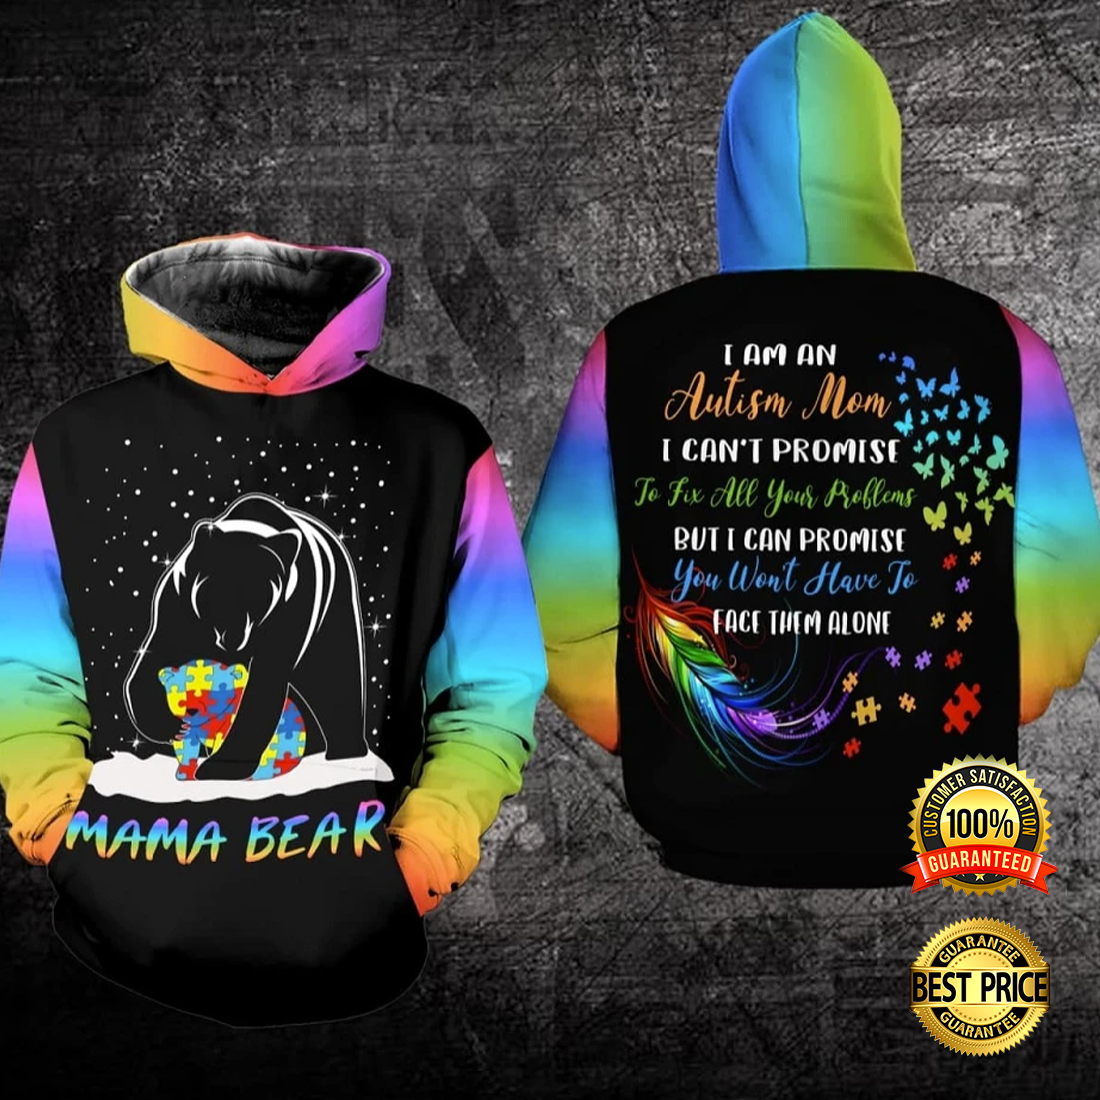 AUTISM MAMA BEAR ALL OVER PRINTED 3D HOODIE 5